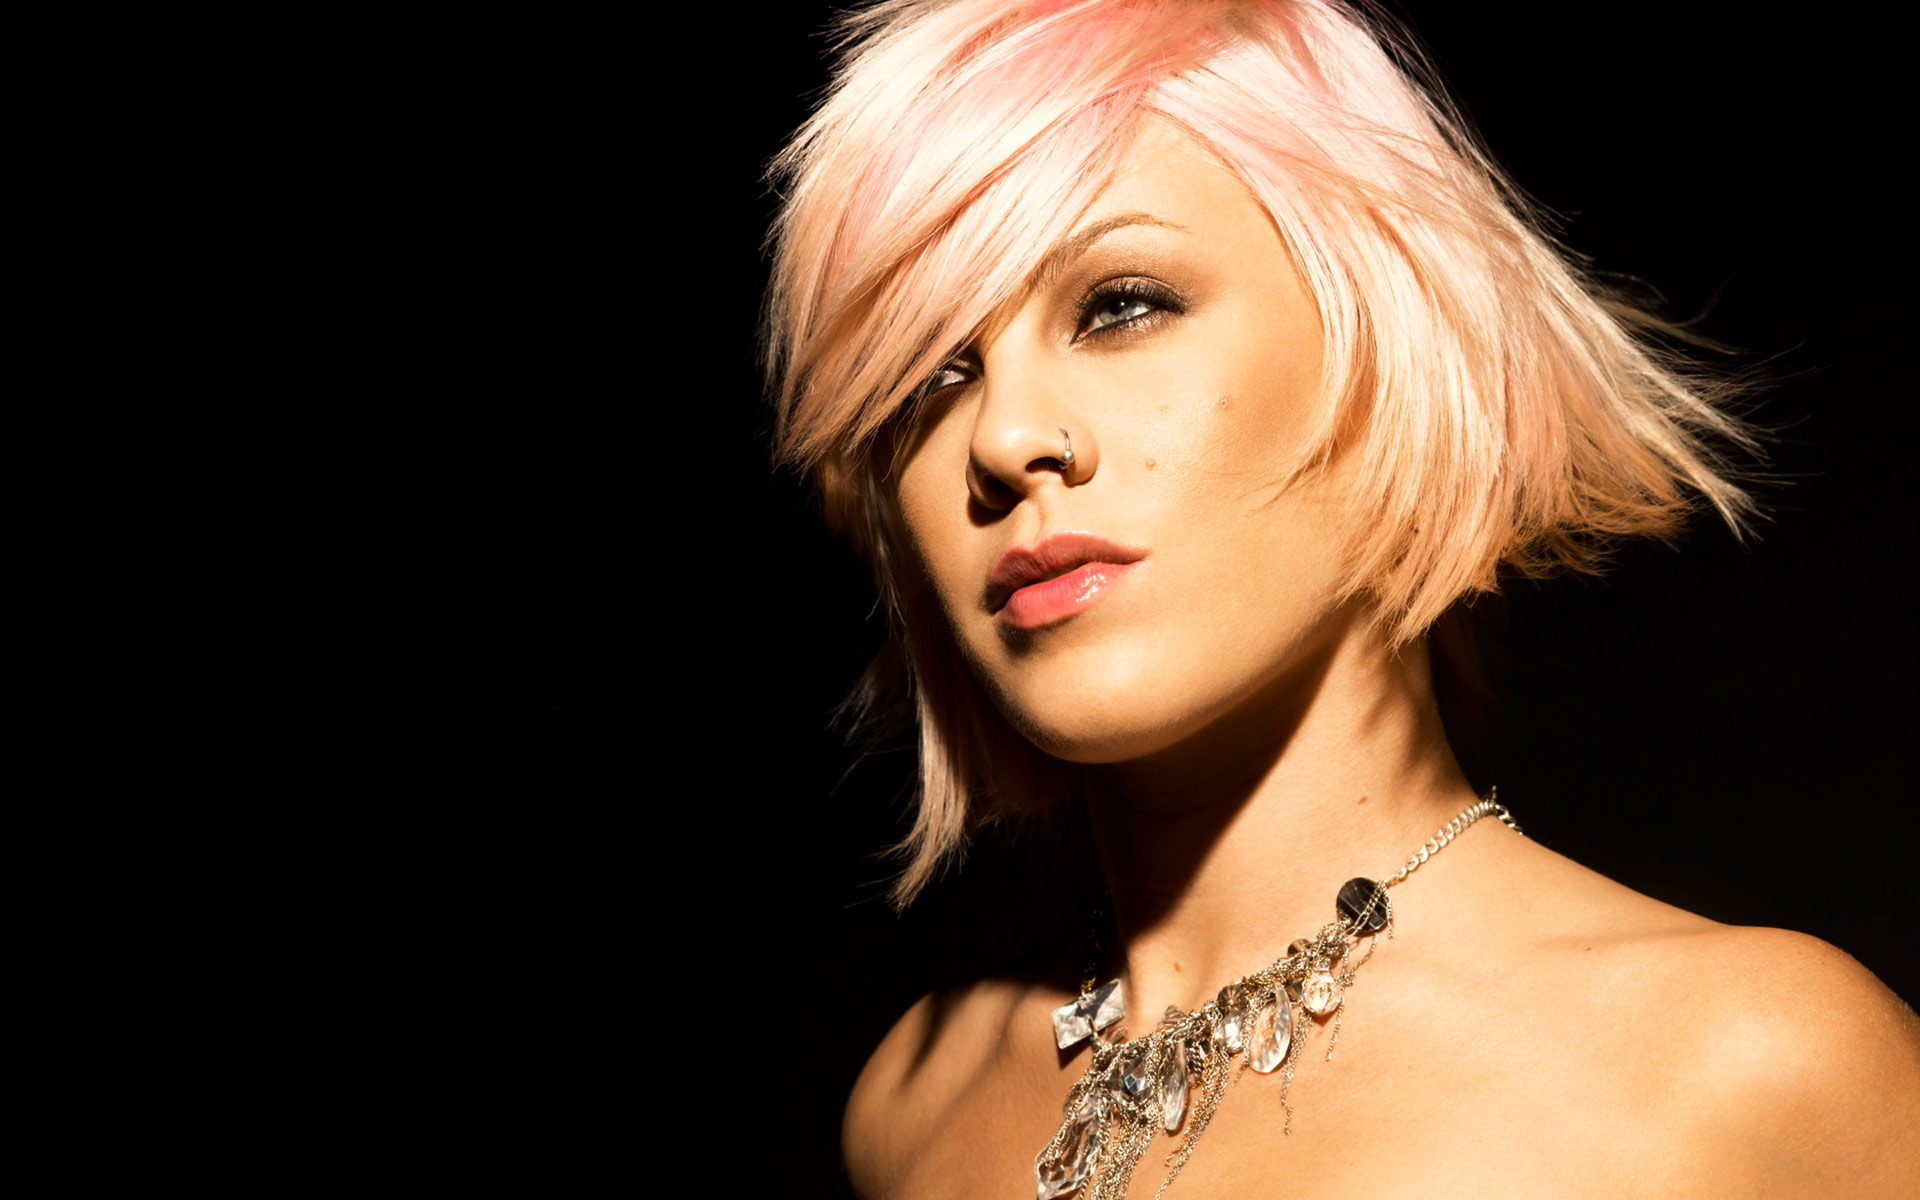 Alecia Beth Moore Wallpaper